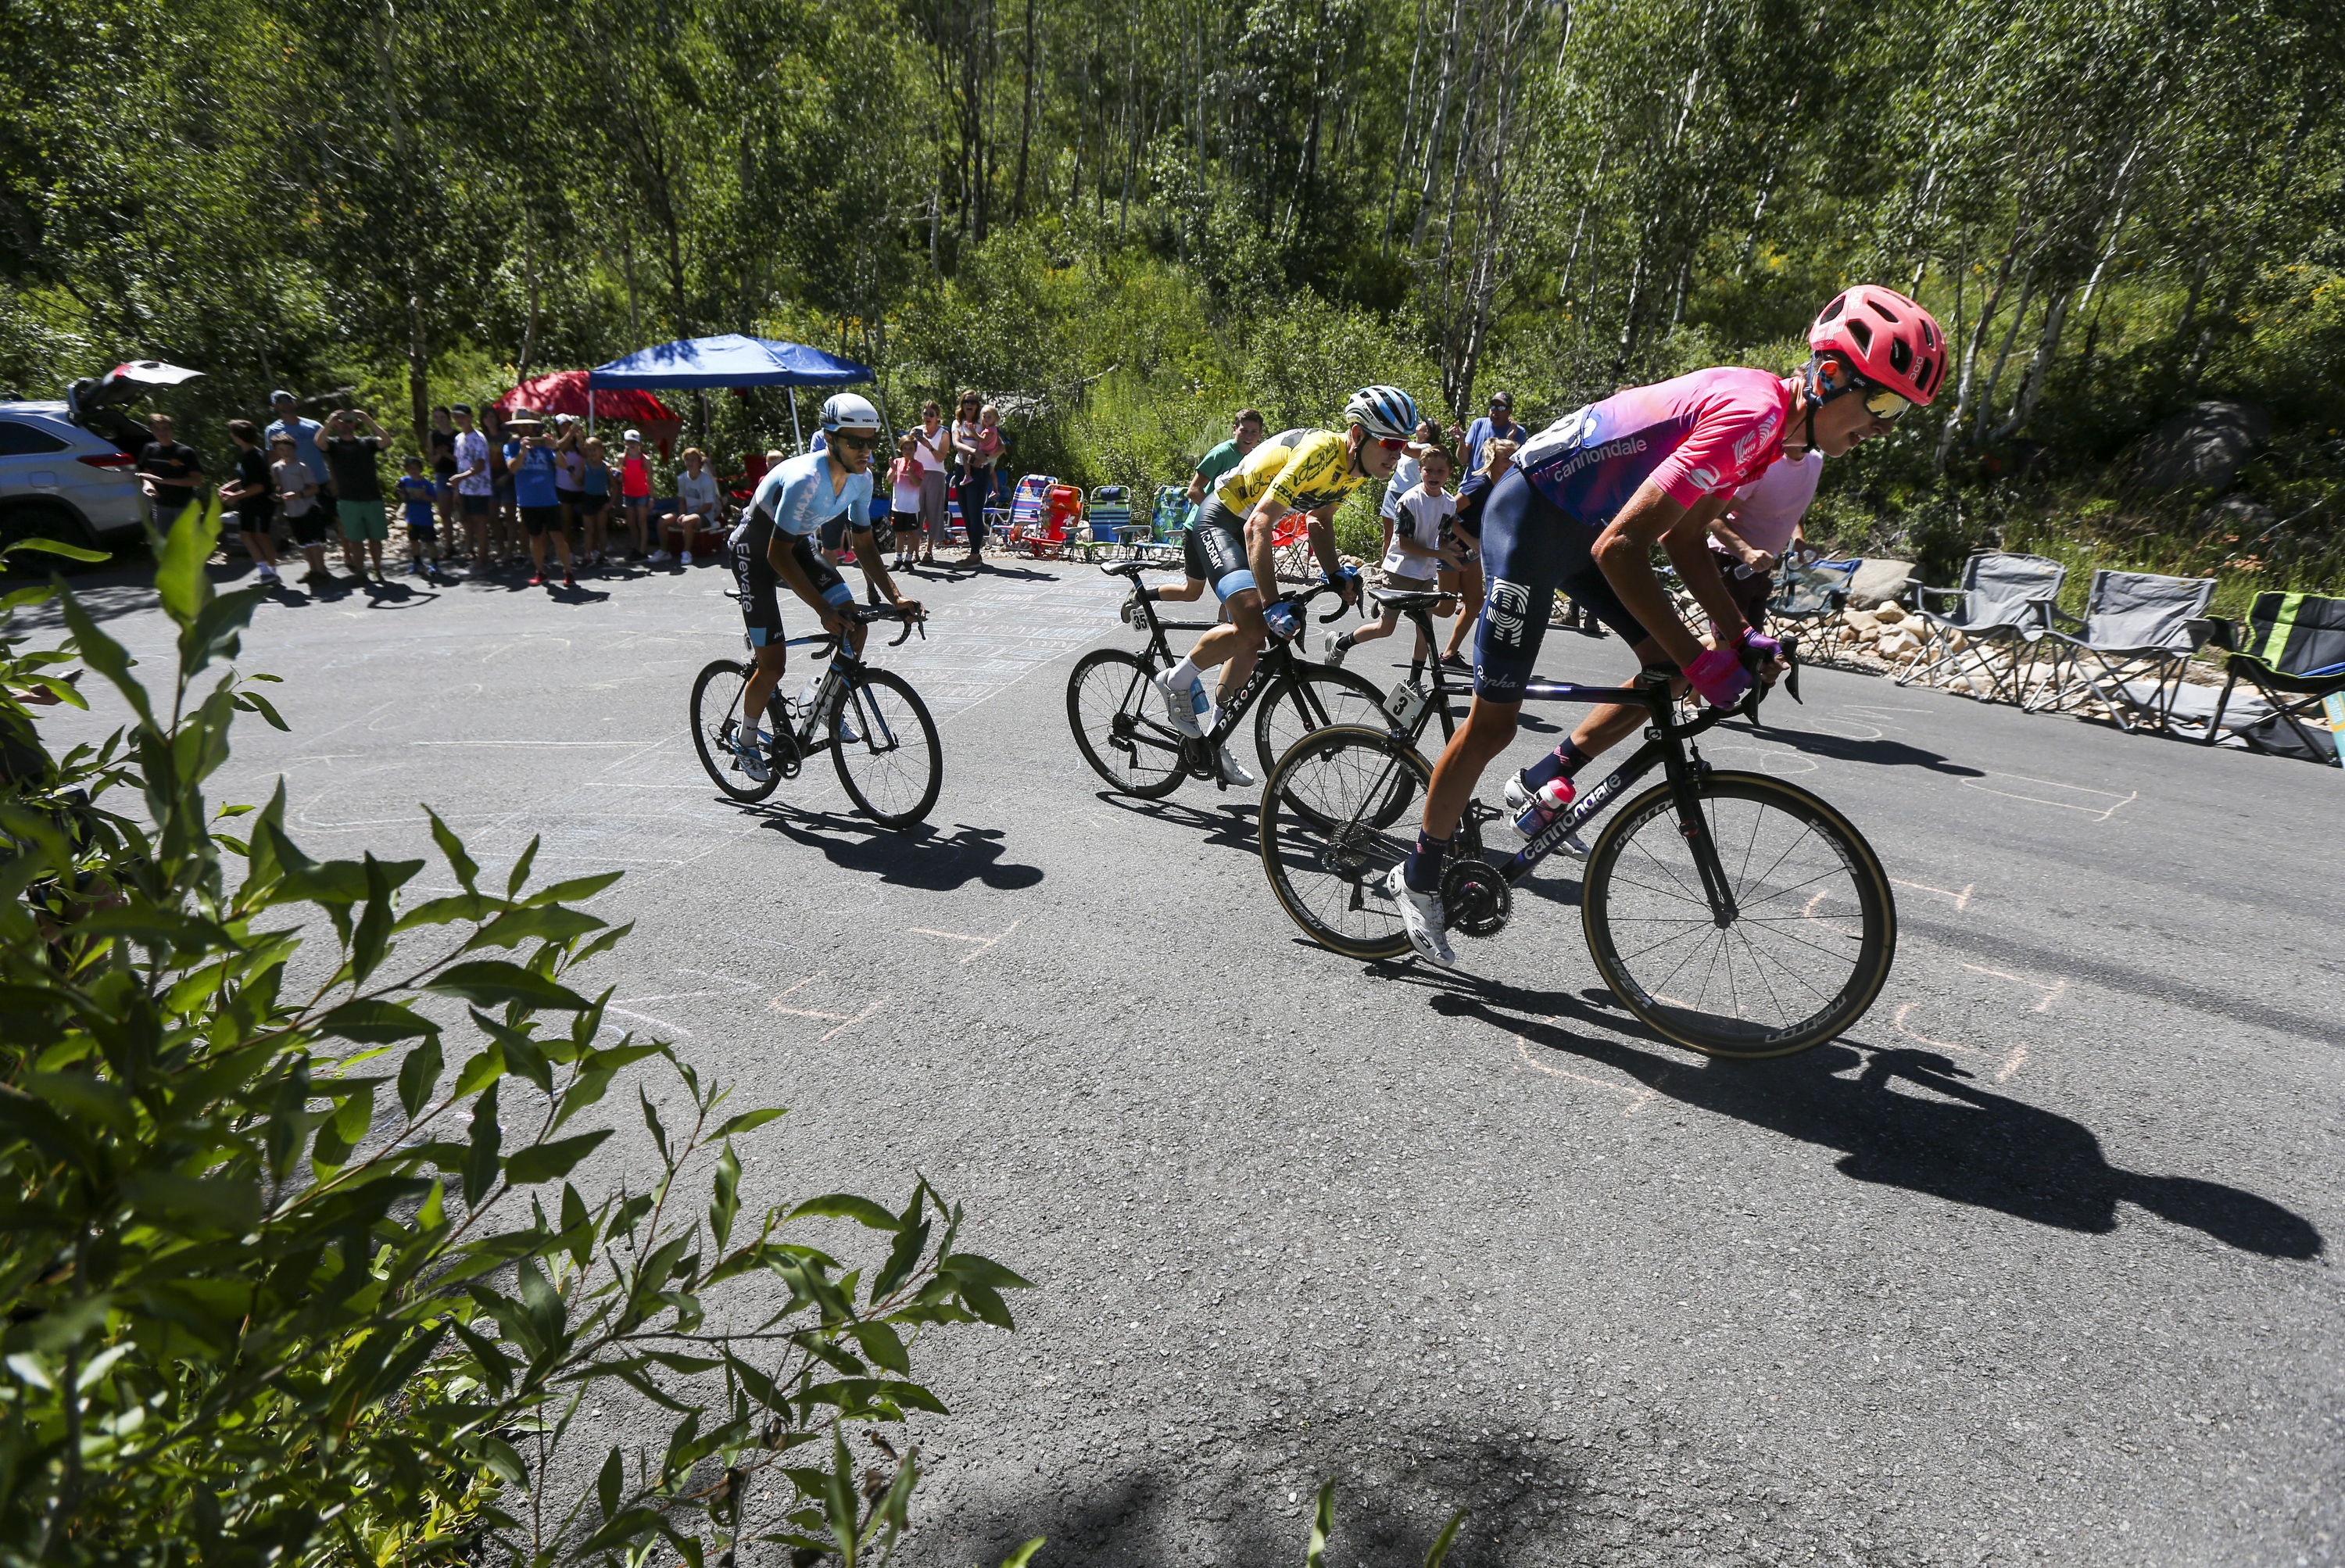 Cyclists James Piccoli, from left, Ben Hermans and Joseph Lloyd Dombrowski ascend Empire Pass during Stage 6 of the Tour of Utah in Wasatch Mountain State Park on Sunday, Aug. 18, 2019. Hermans won the general classification standings with a lead of 50 seconds.